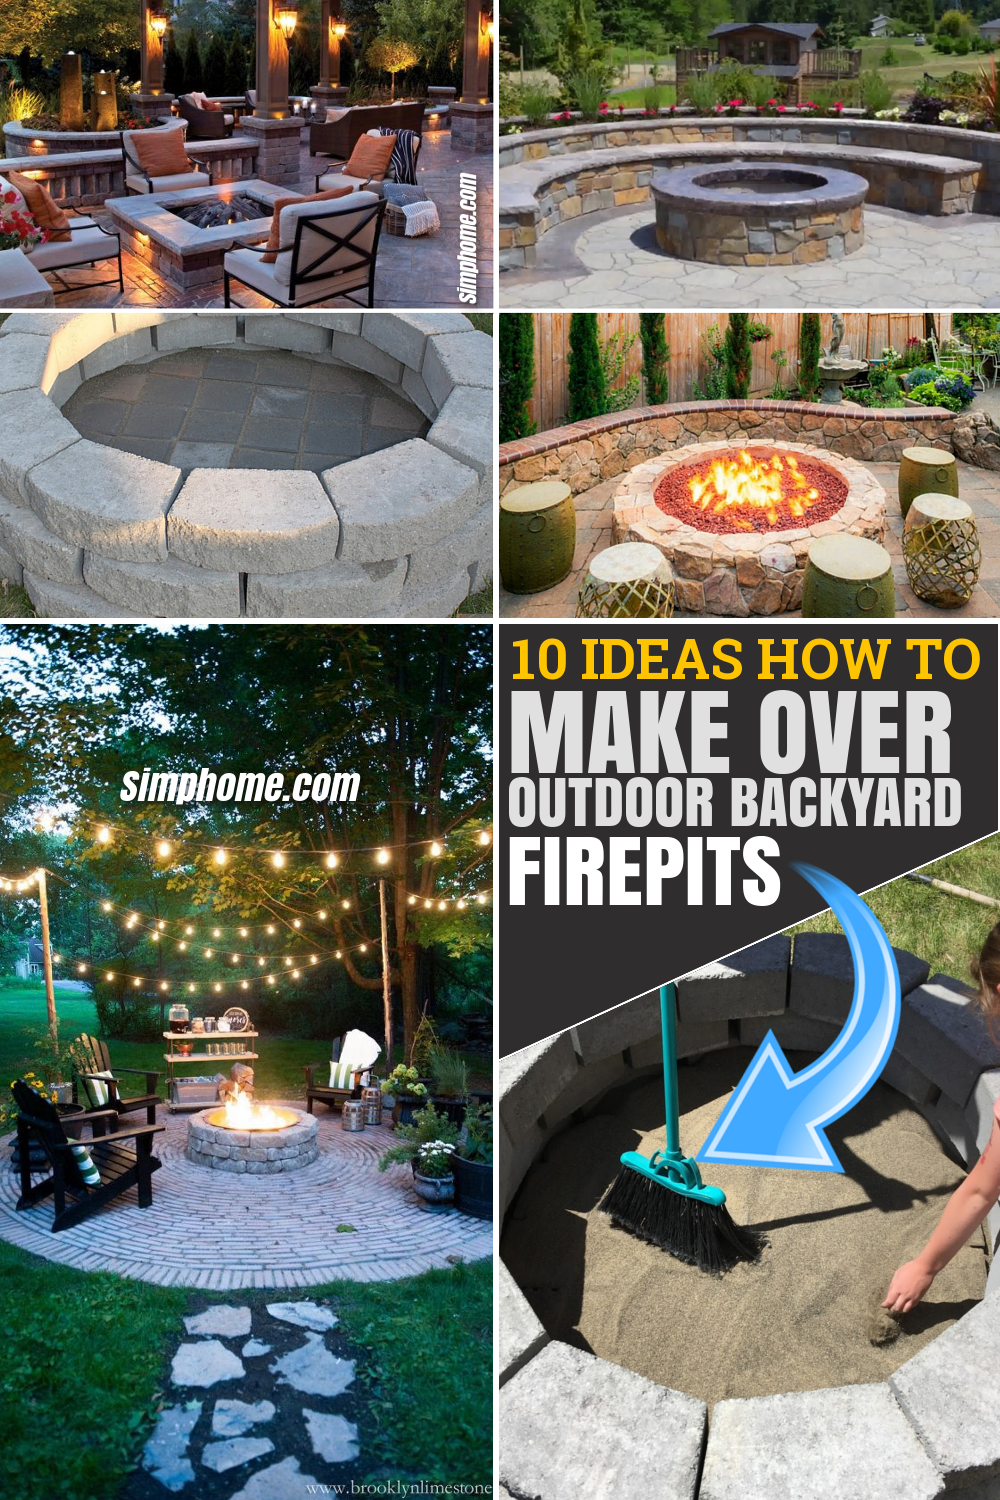 10 Ideas How to Makeover Outdoor Backyard Firepits via SIMPHOME.COM Featured Pinterest Image